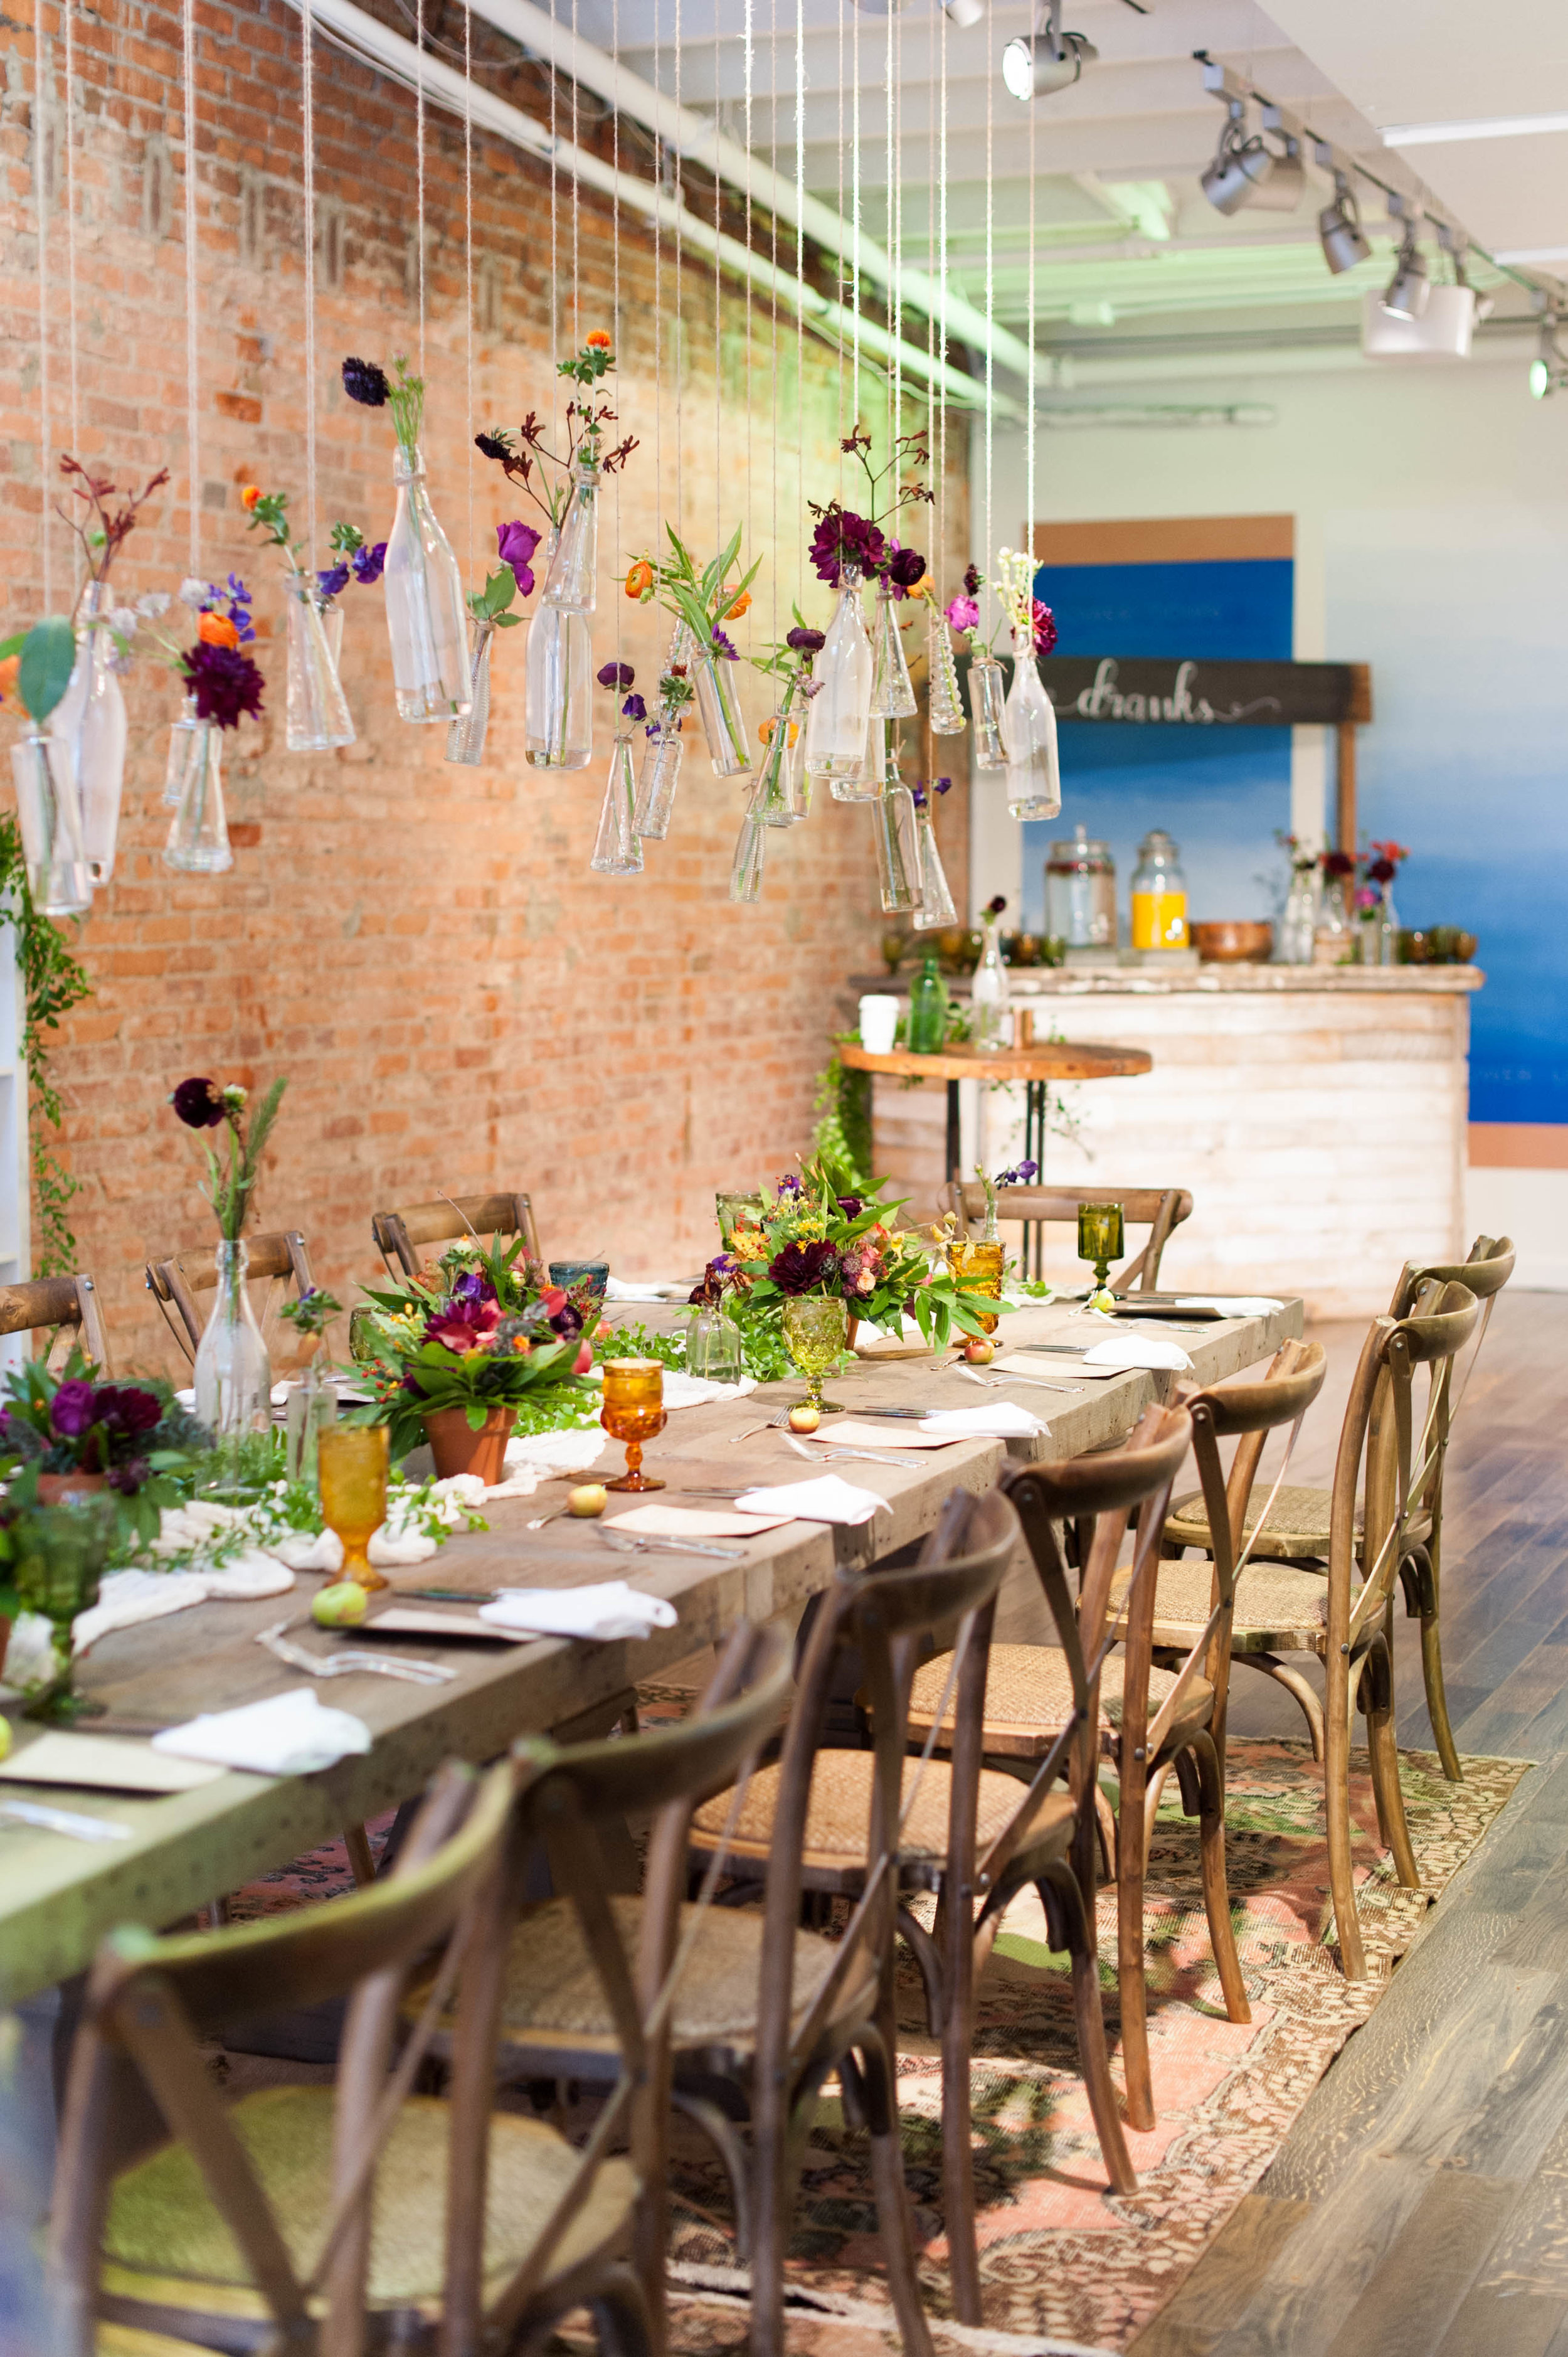 Overall catering, styling and design by  HeirloomDC  @heirloomdc -- love the hanging glass bottles with flowers as a chandelier centerpiece.